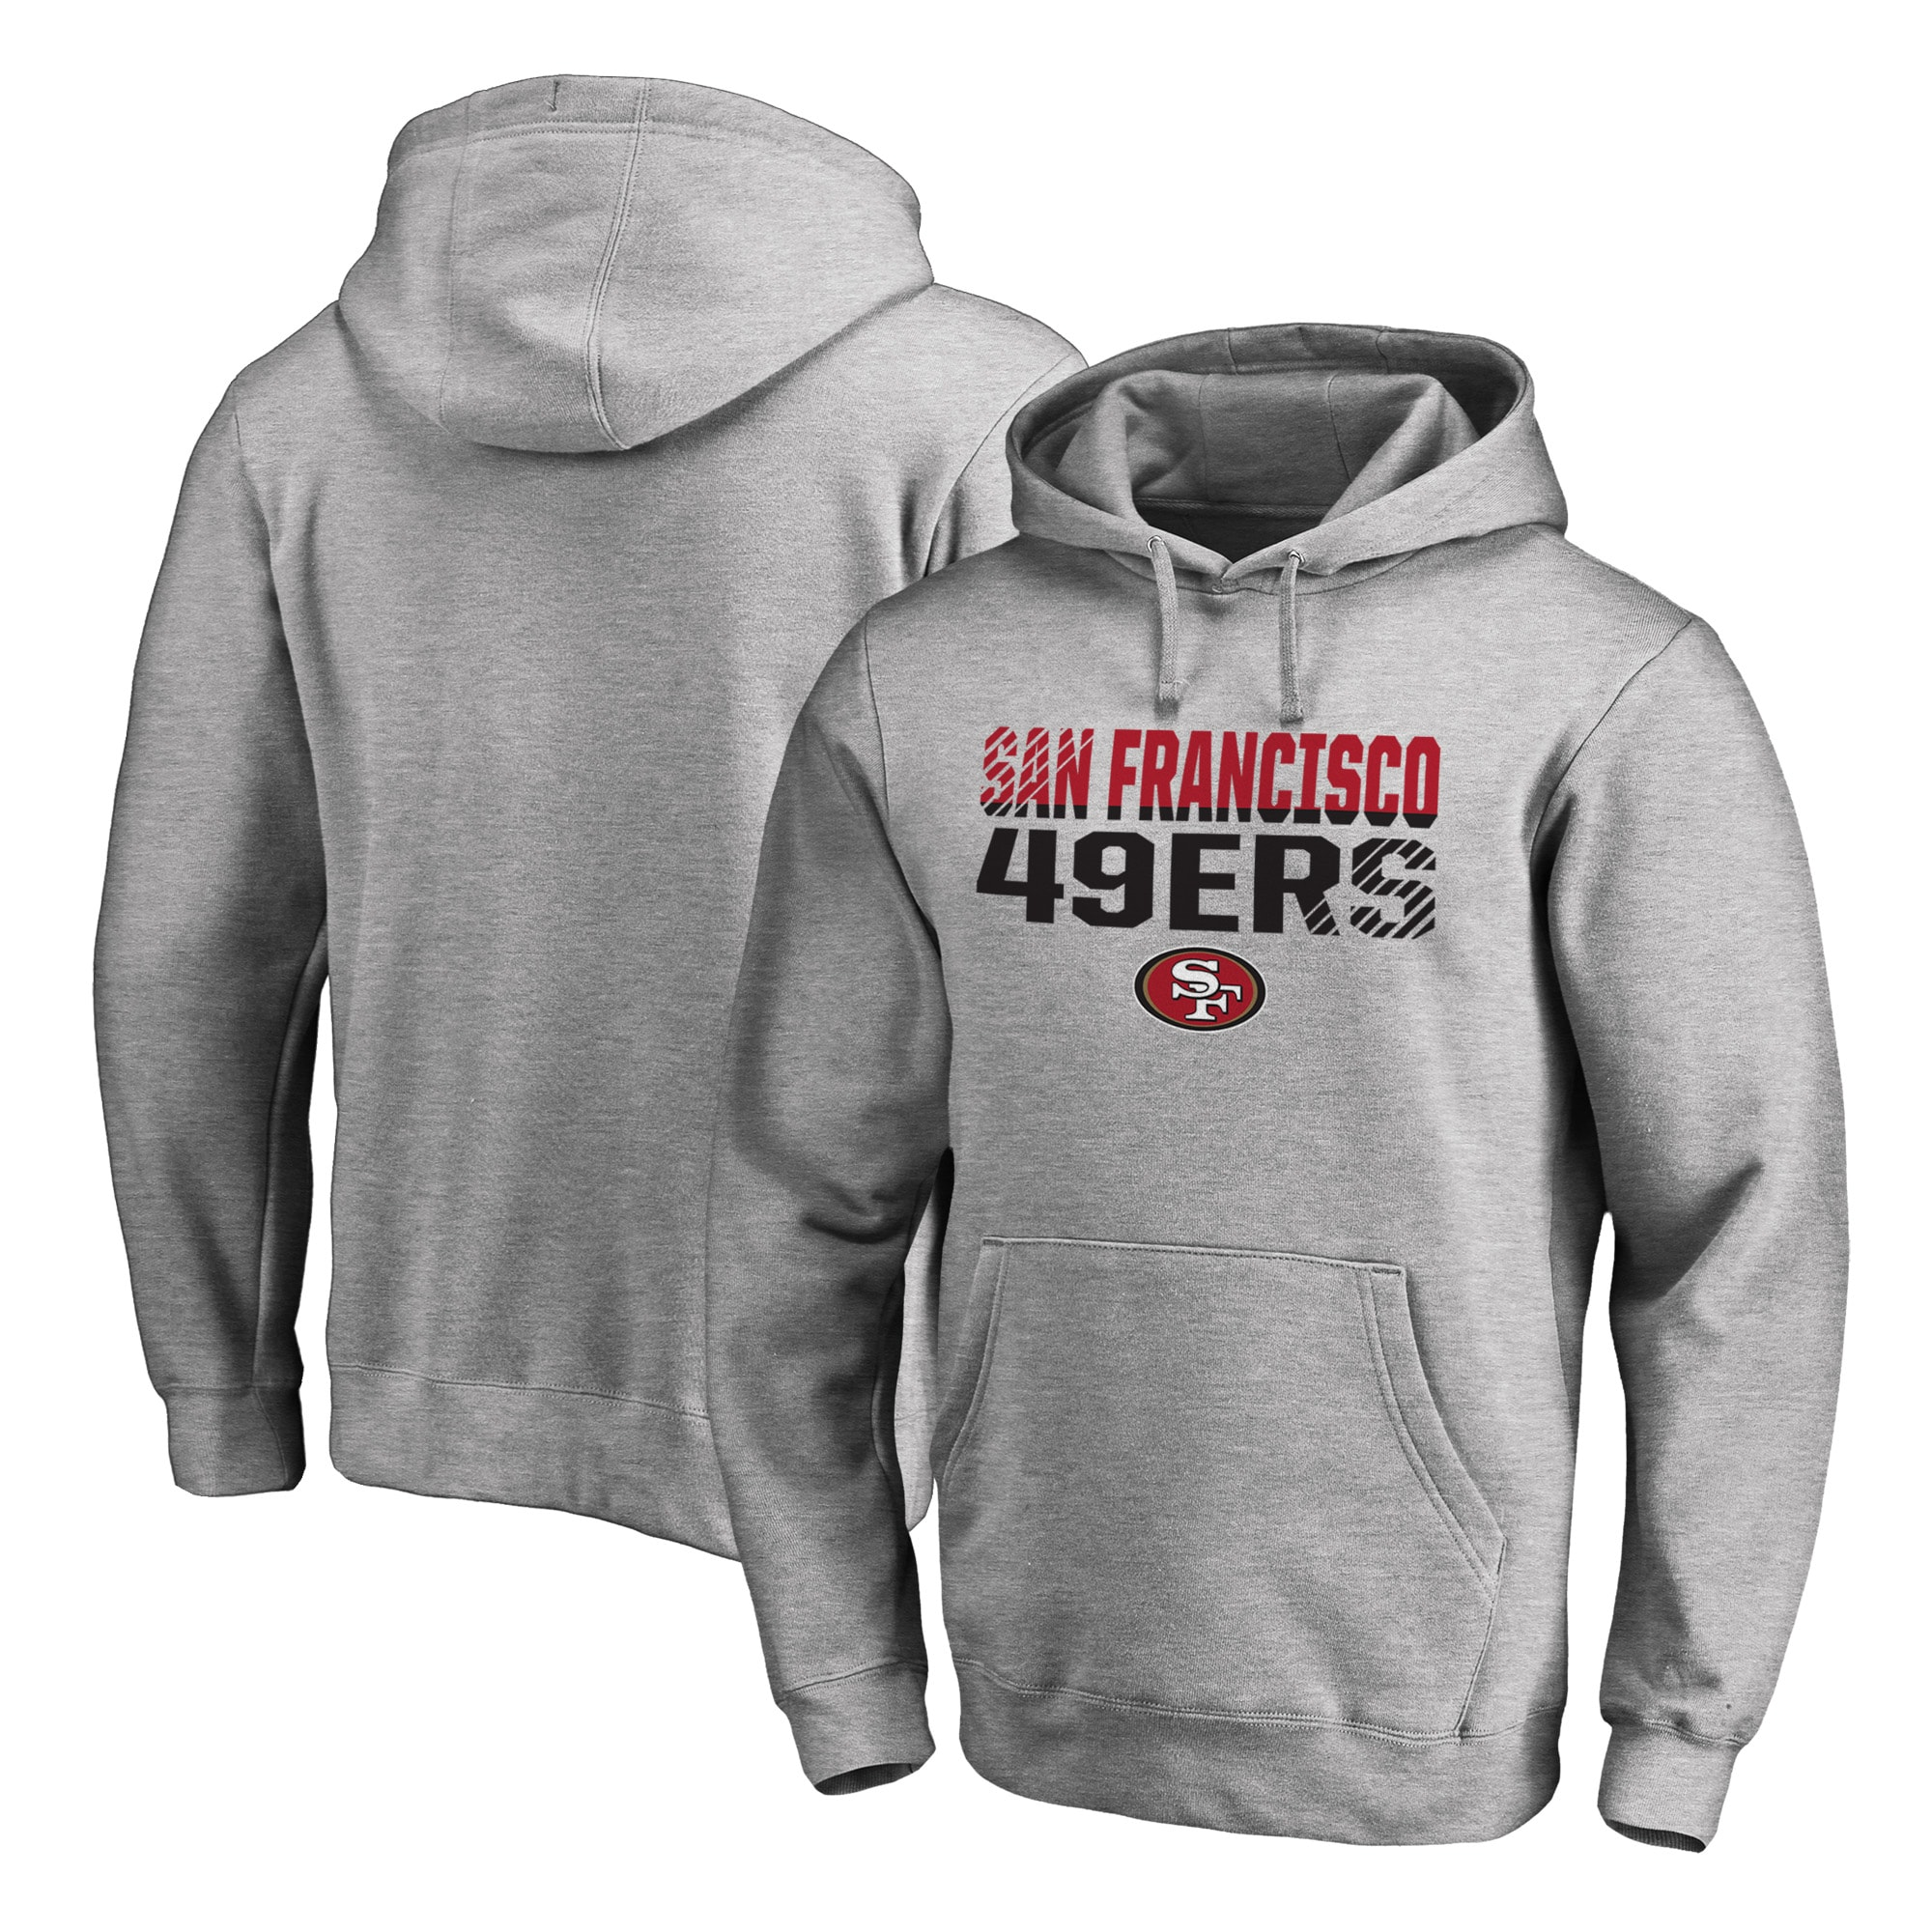 San Francisco 49ers NFL Pro Line by Fanatics Branded Iconic Collection Fade Out Pullover Hoodie - Ash